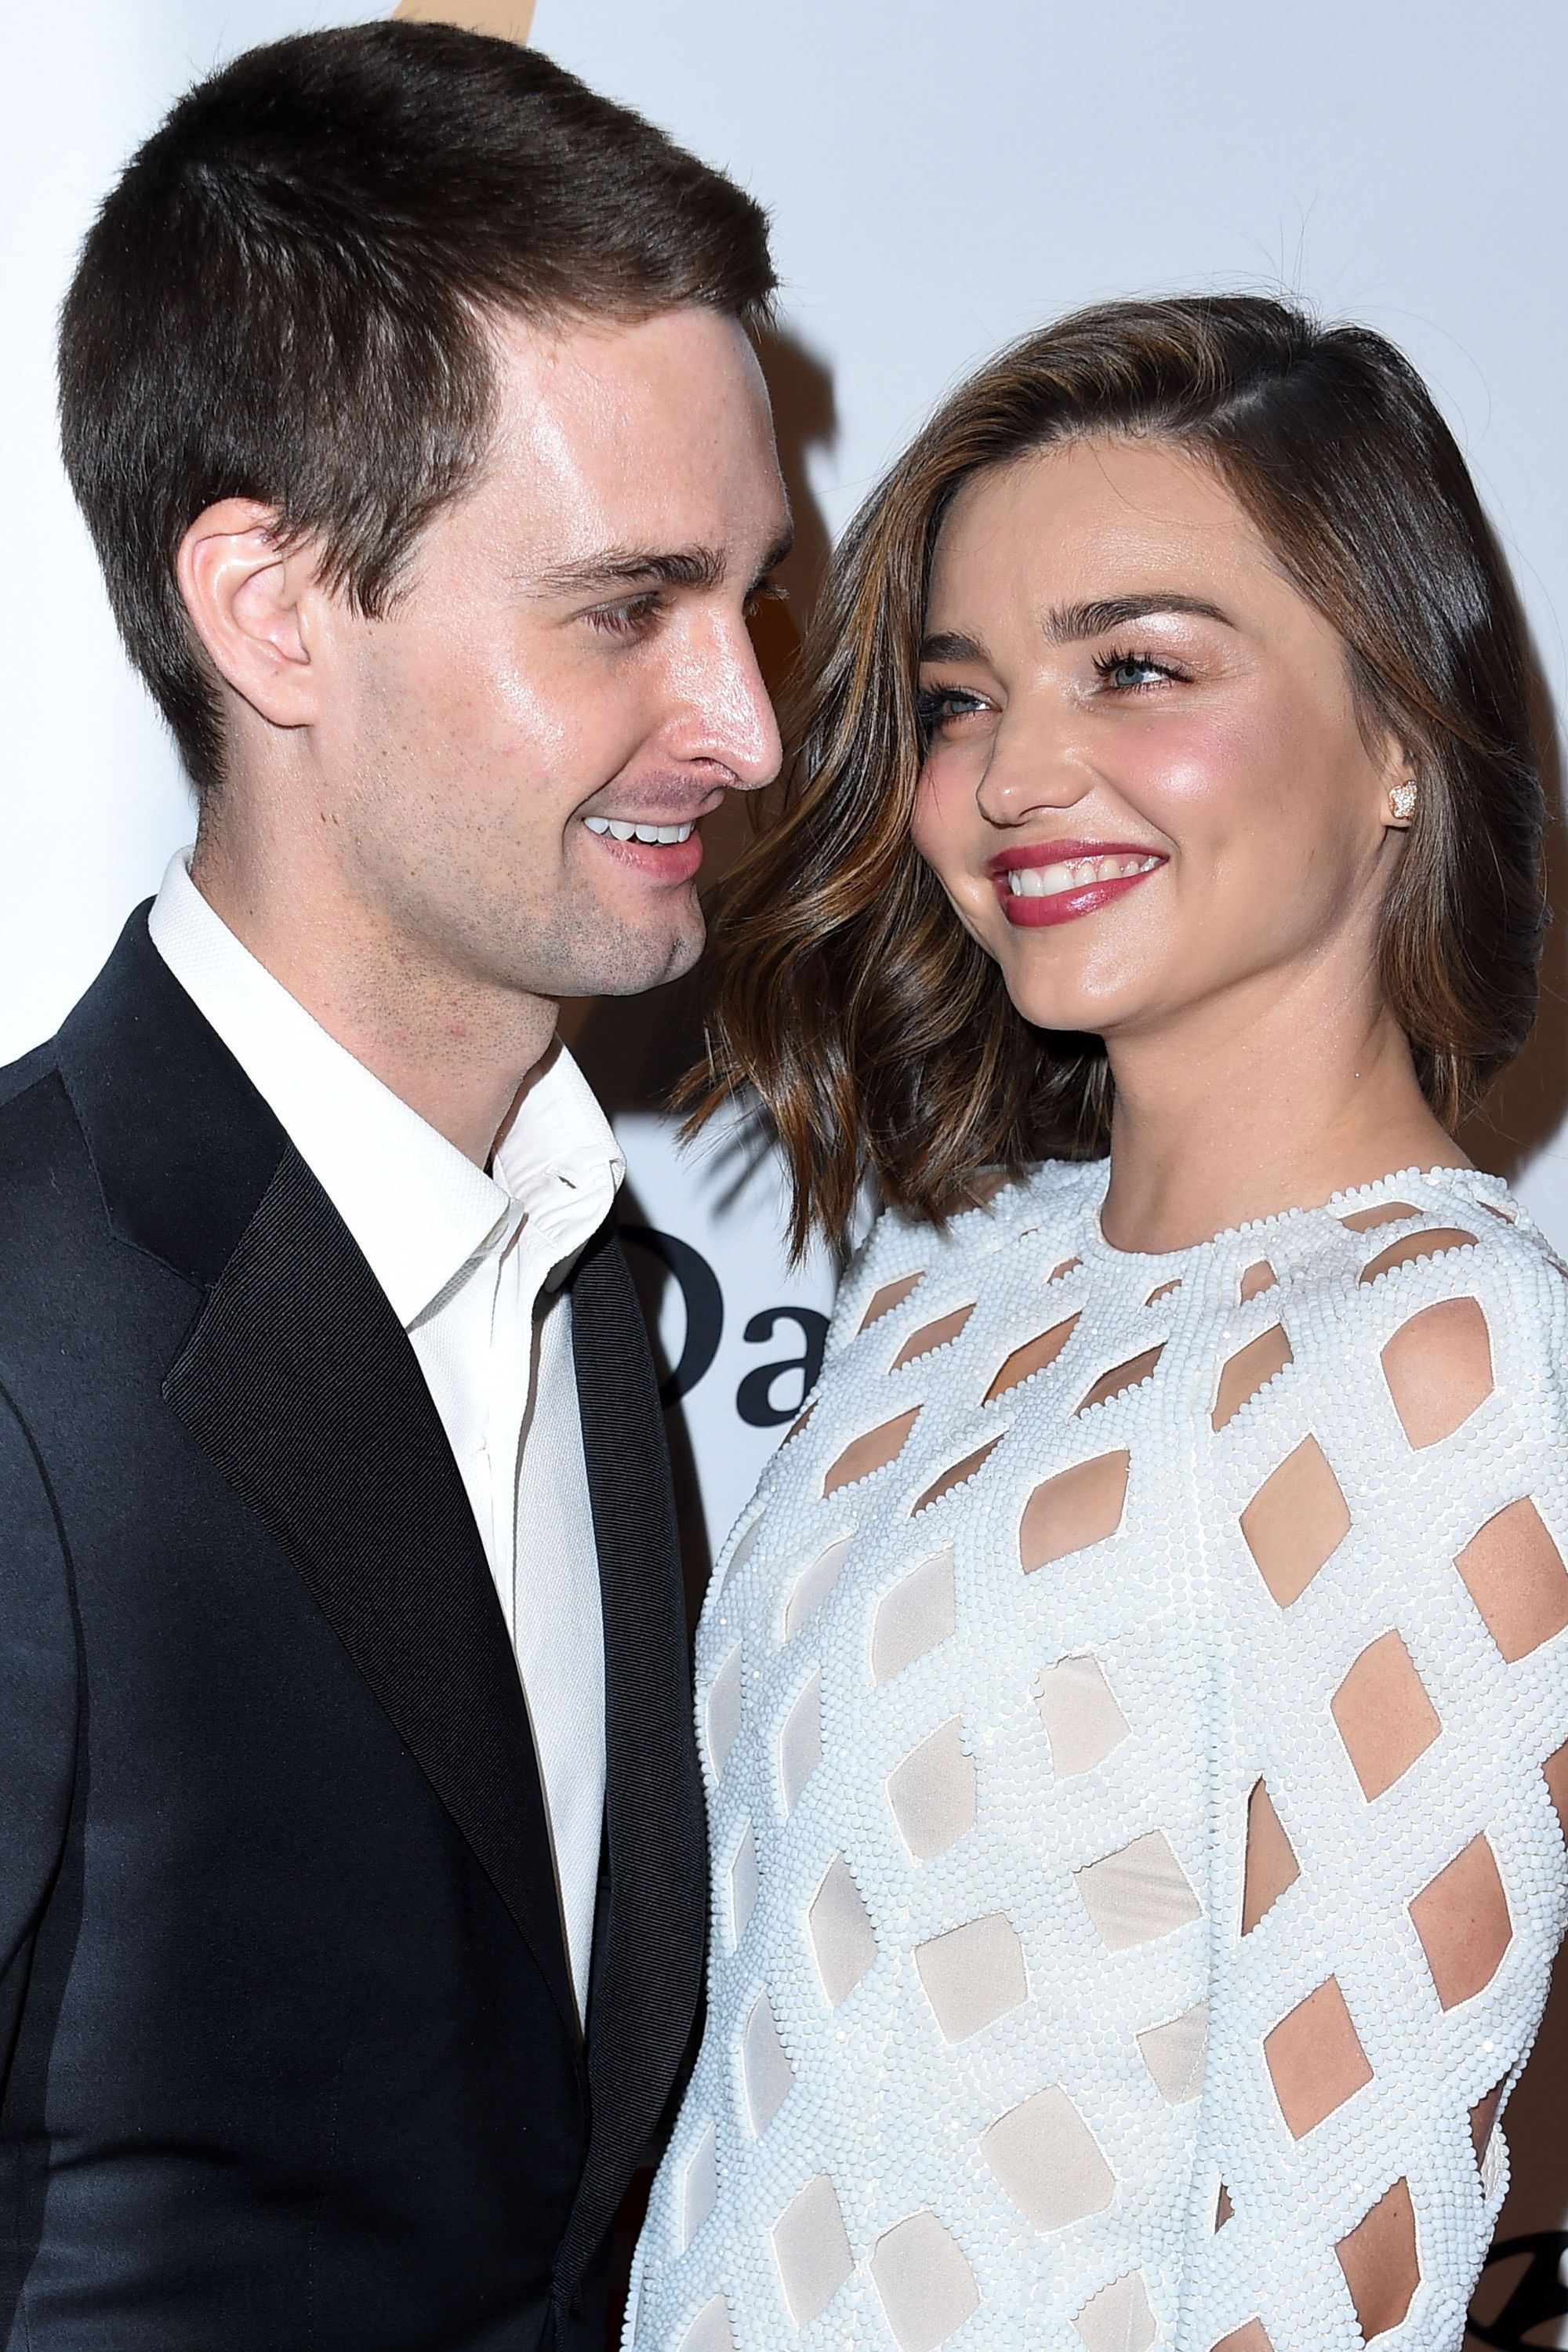 Is Miranda Kerr dating iemand